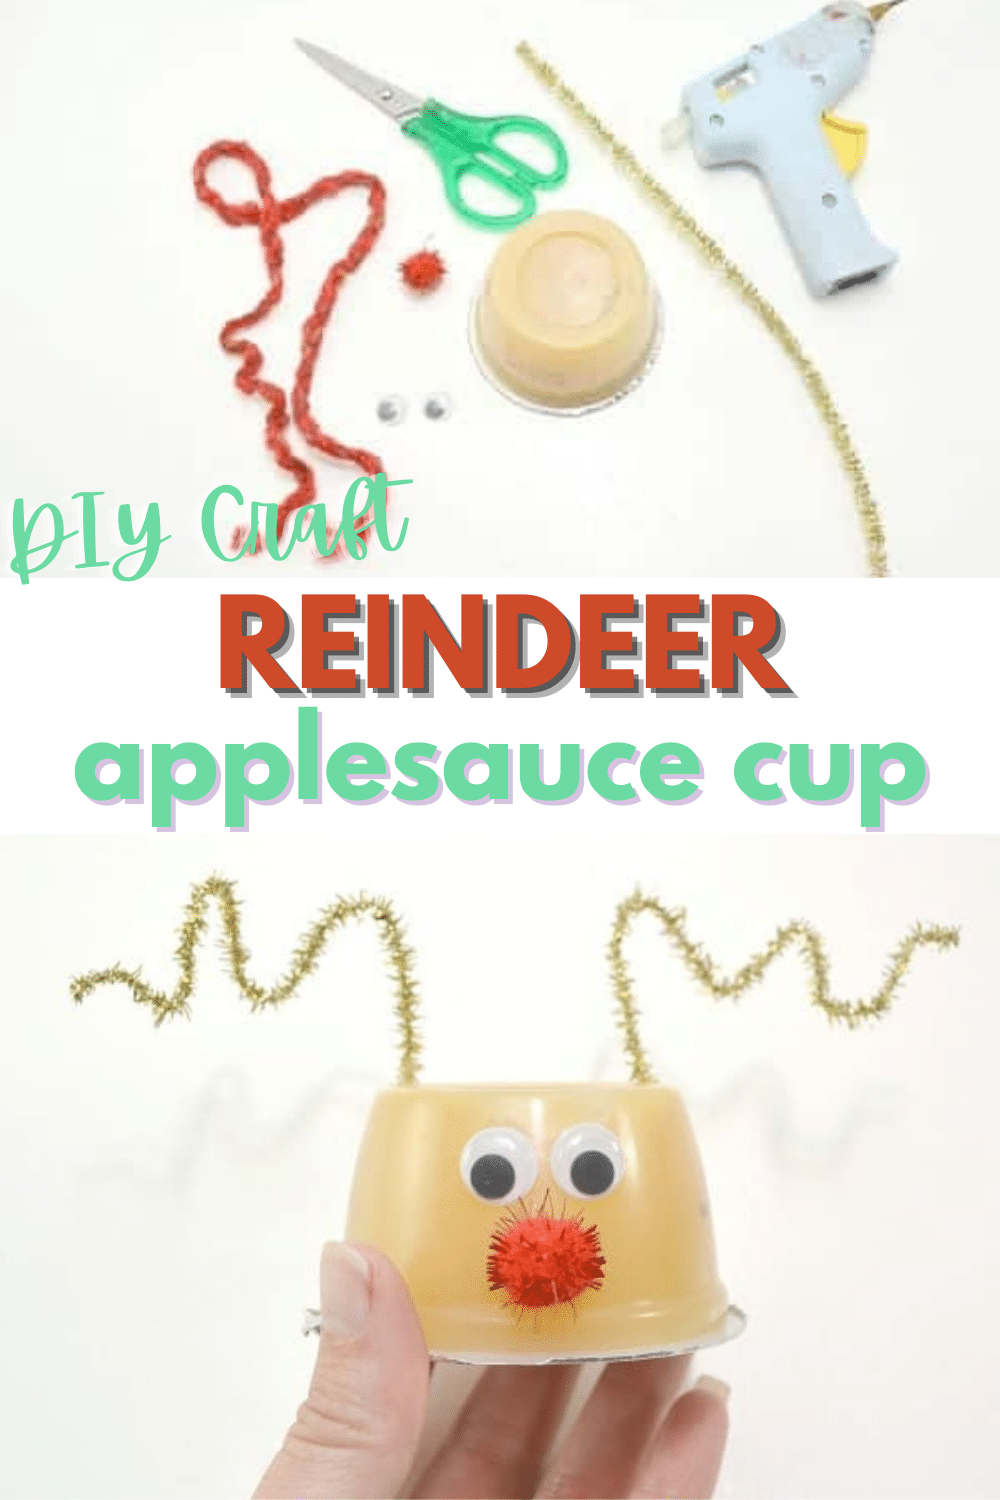 This reindeer applesauce is so cute! What an easy way to turn an ordinary snack into a fun holiday treat! #funfood #Christmas #reindeer #applesauce via @wondermomwannab